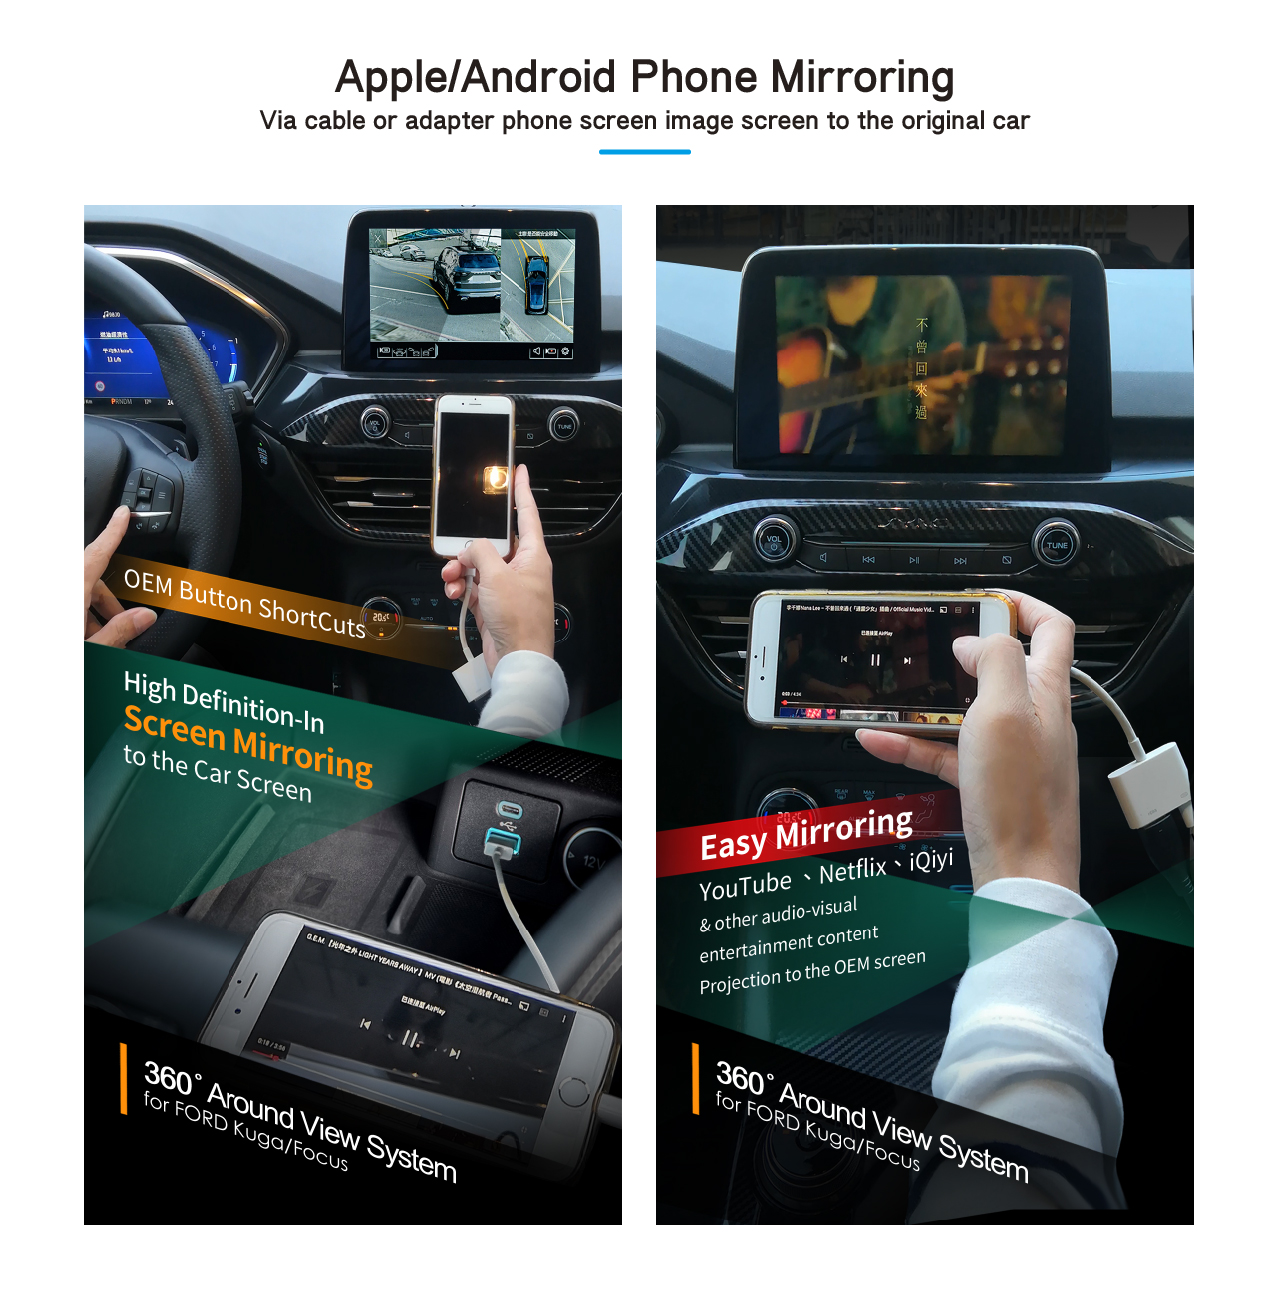 Apple/Android Phone Mirroring